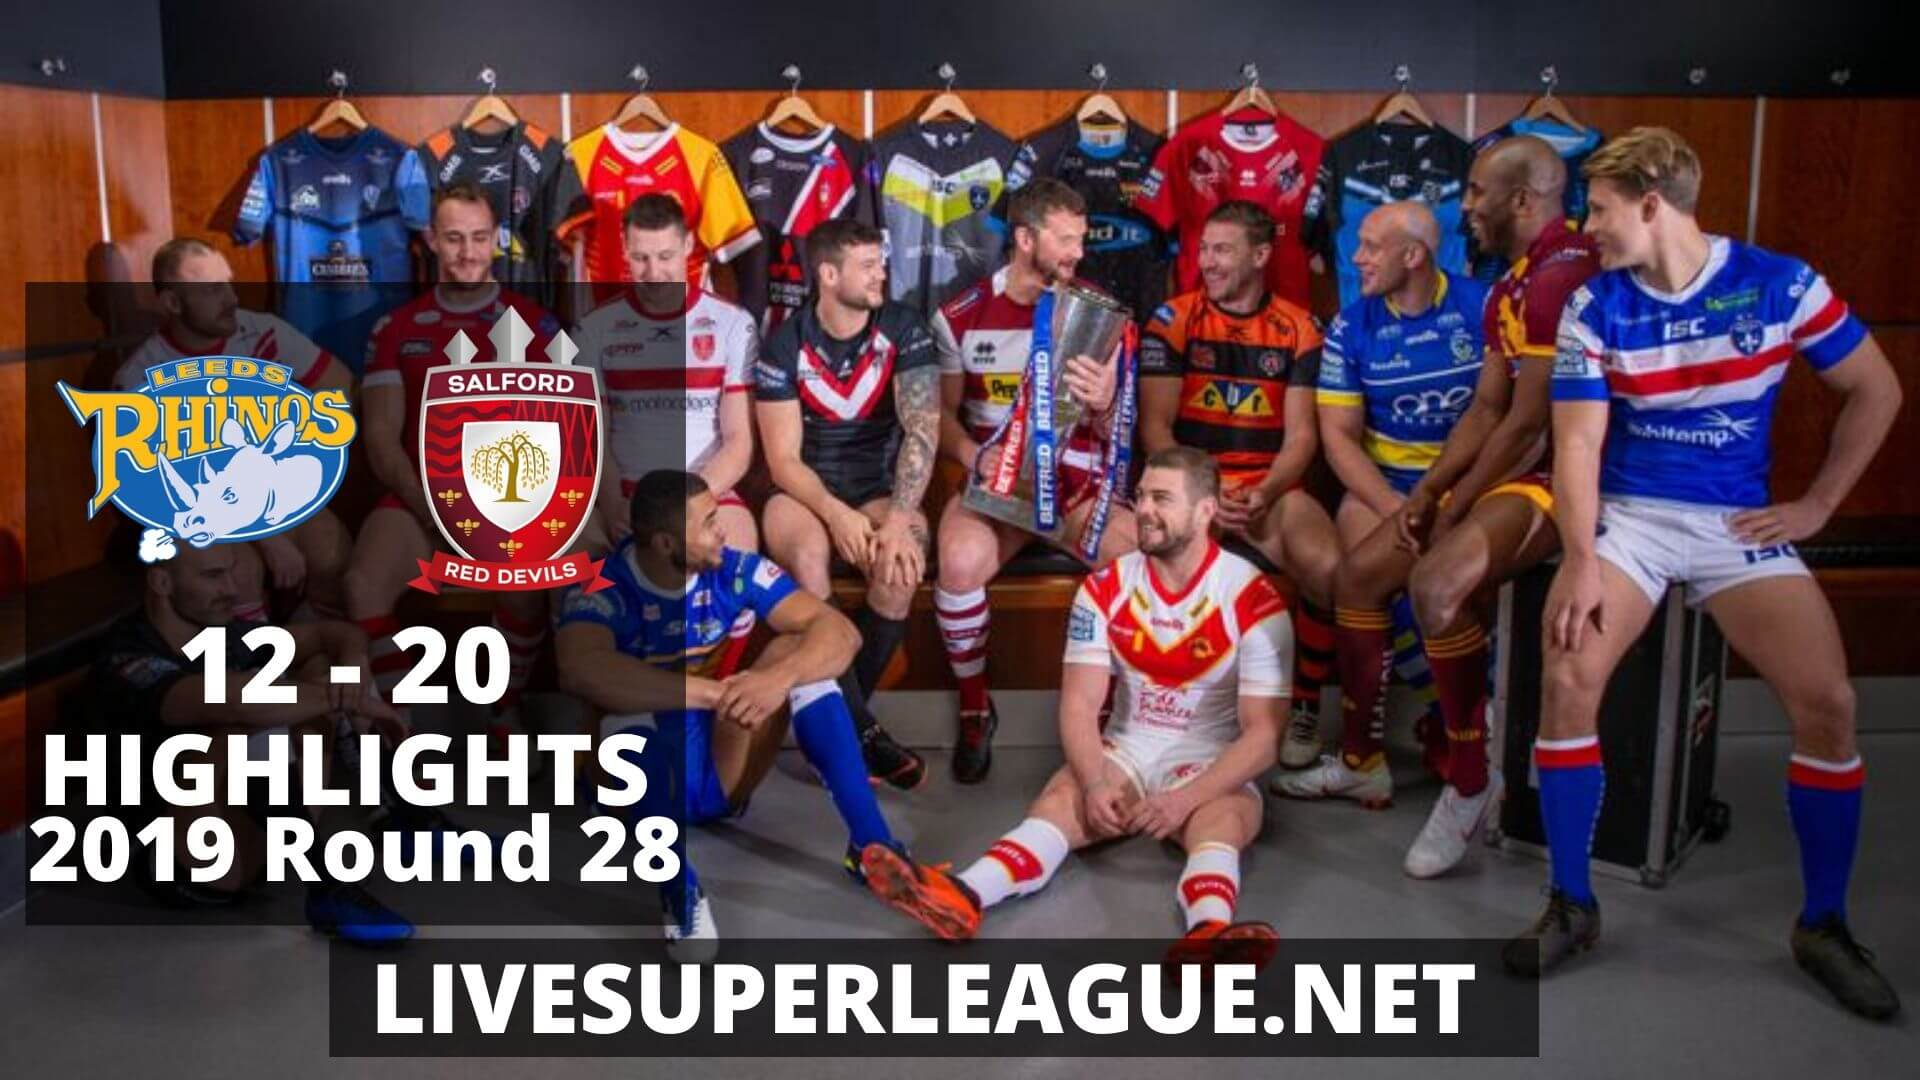 Leeds Rhinos Vs Salford Red Devils Highlights 2019 Round 28